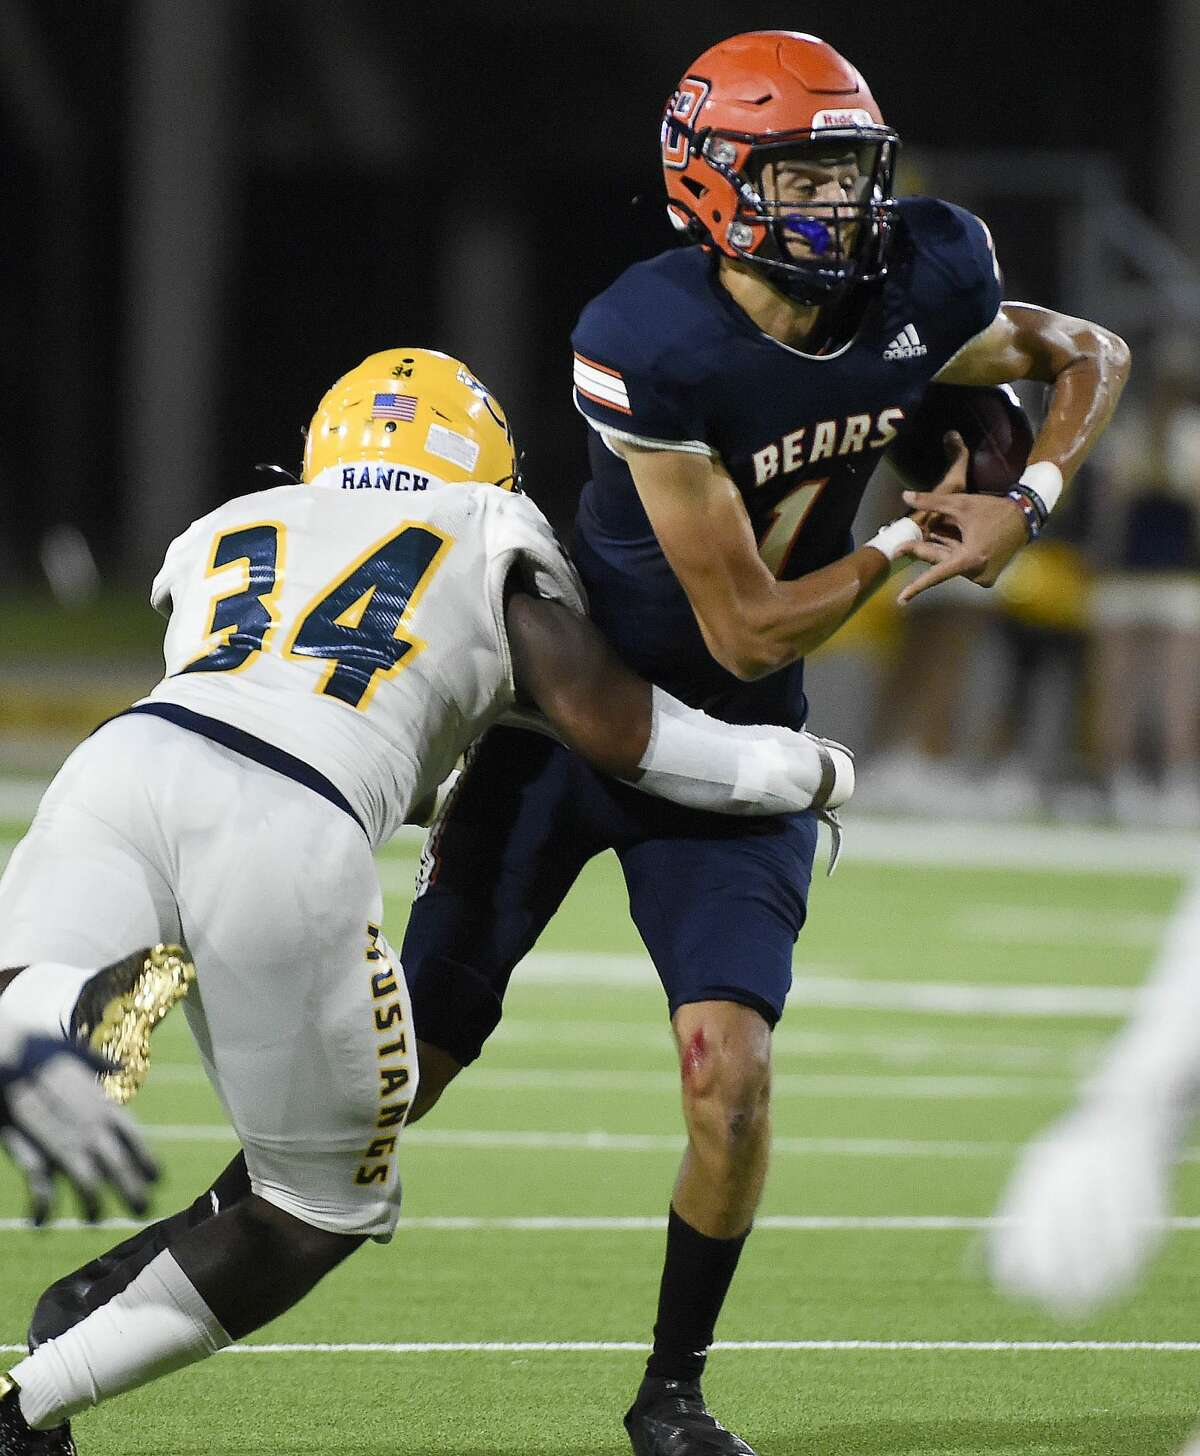 Bridgeland quarterback Josh Stephens (1) fumbles the bal;l after being sacked by Cypress Ranch linebacker Joseph White Jr. during the first half of a high school football game, Saturday, Oct. 9, 2021, in Houston.